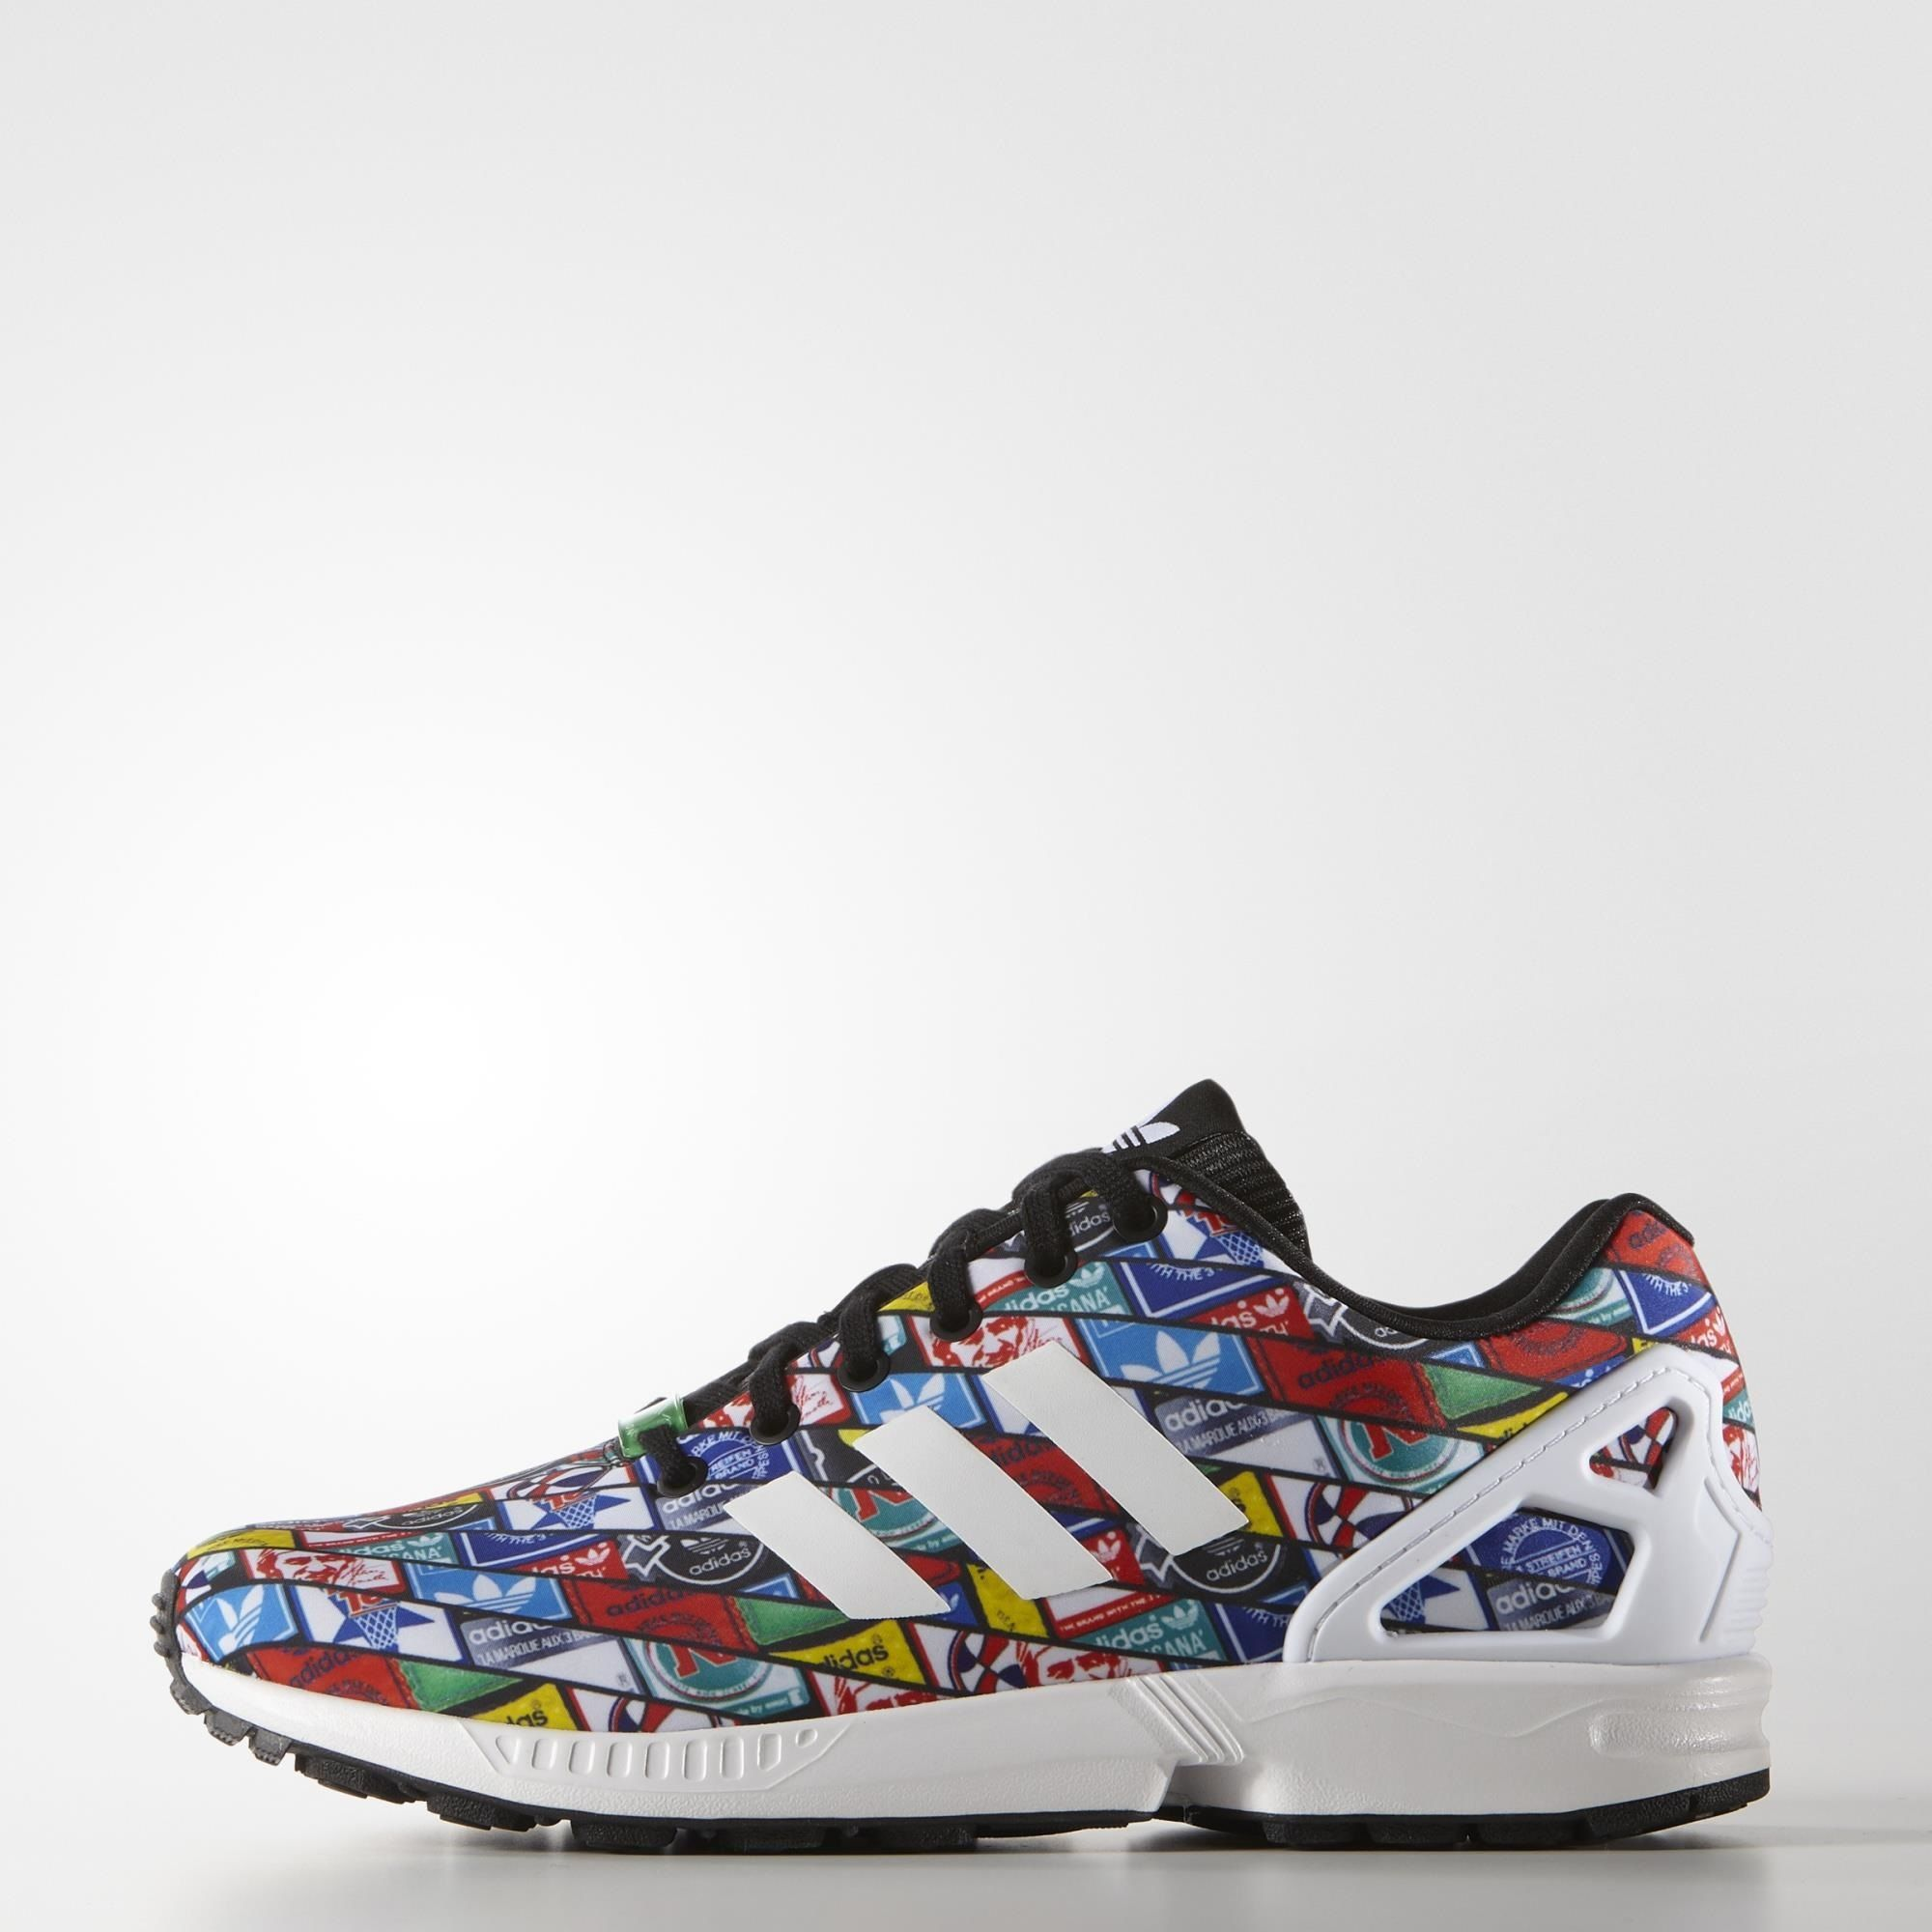 adidas ZX Flux Shoes White | adidas US | Adidas zx flux